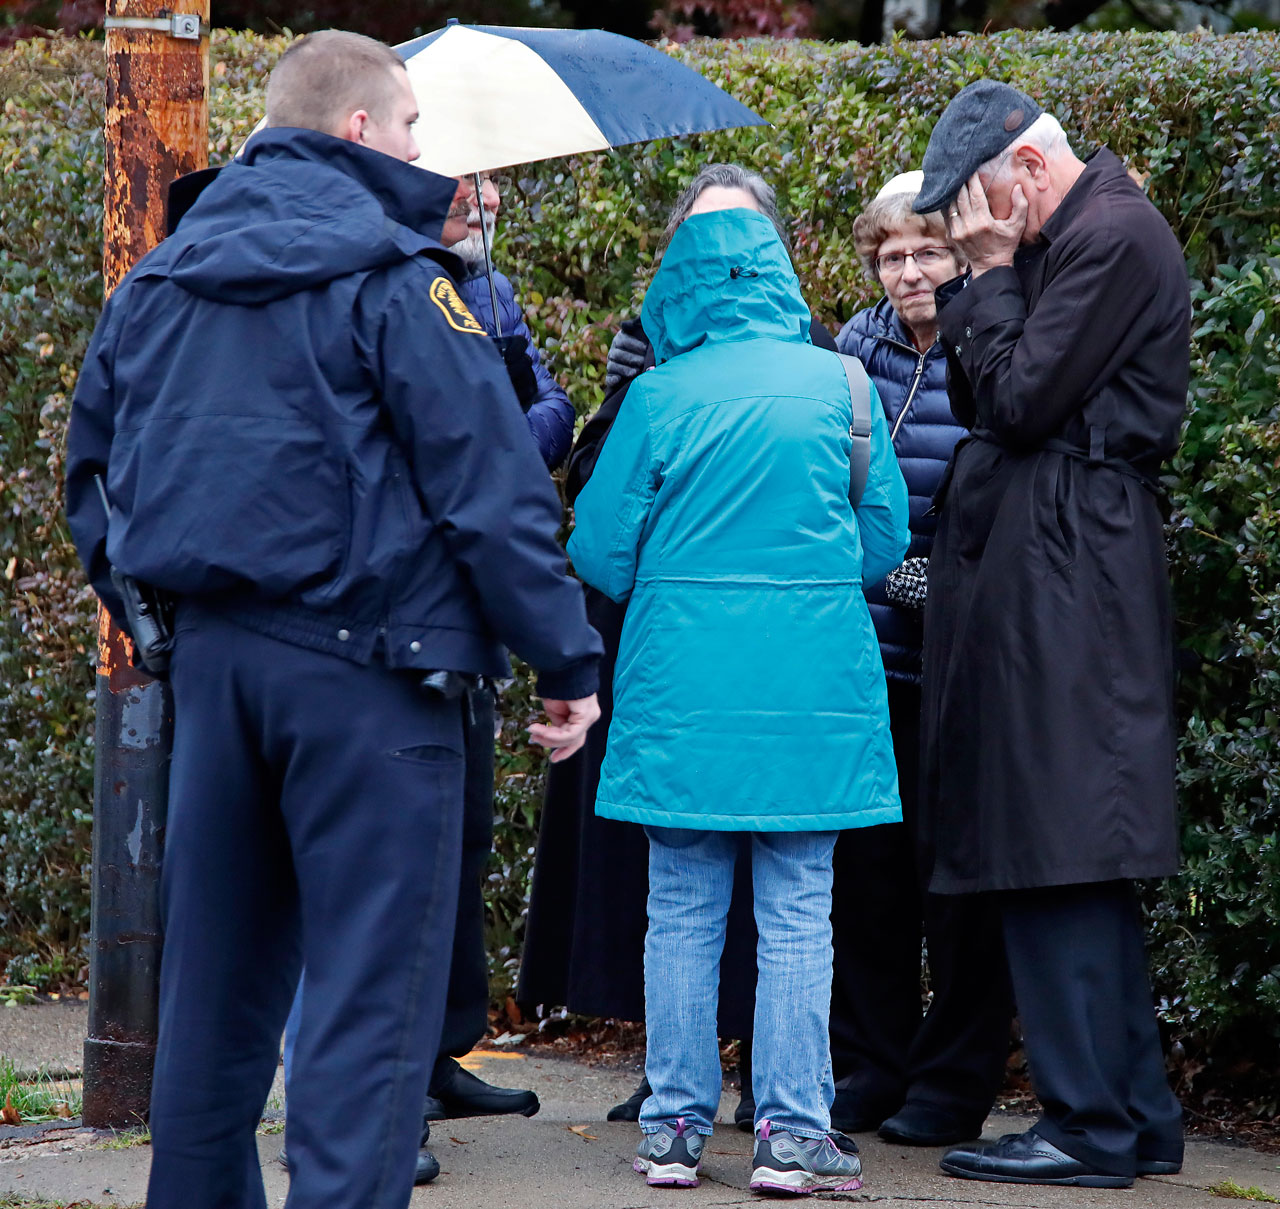 <div class='meta'><div class='origin-logo' data-origin='AP'></div><span class='caption-text' data-credit='AP Photo/Gene J. Puskar'>People gather on a corner near the Tree of Life Synagogue in Pittsburgh, Pa., where a shooter opened fire Saturday, Oct. 27, 2018, injuring multiple people.</span></div>